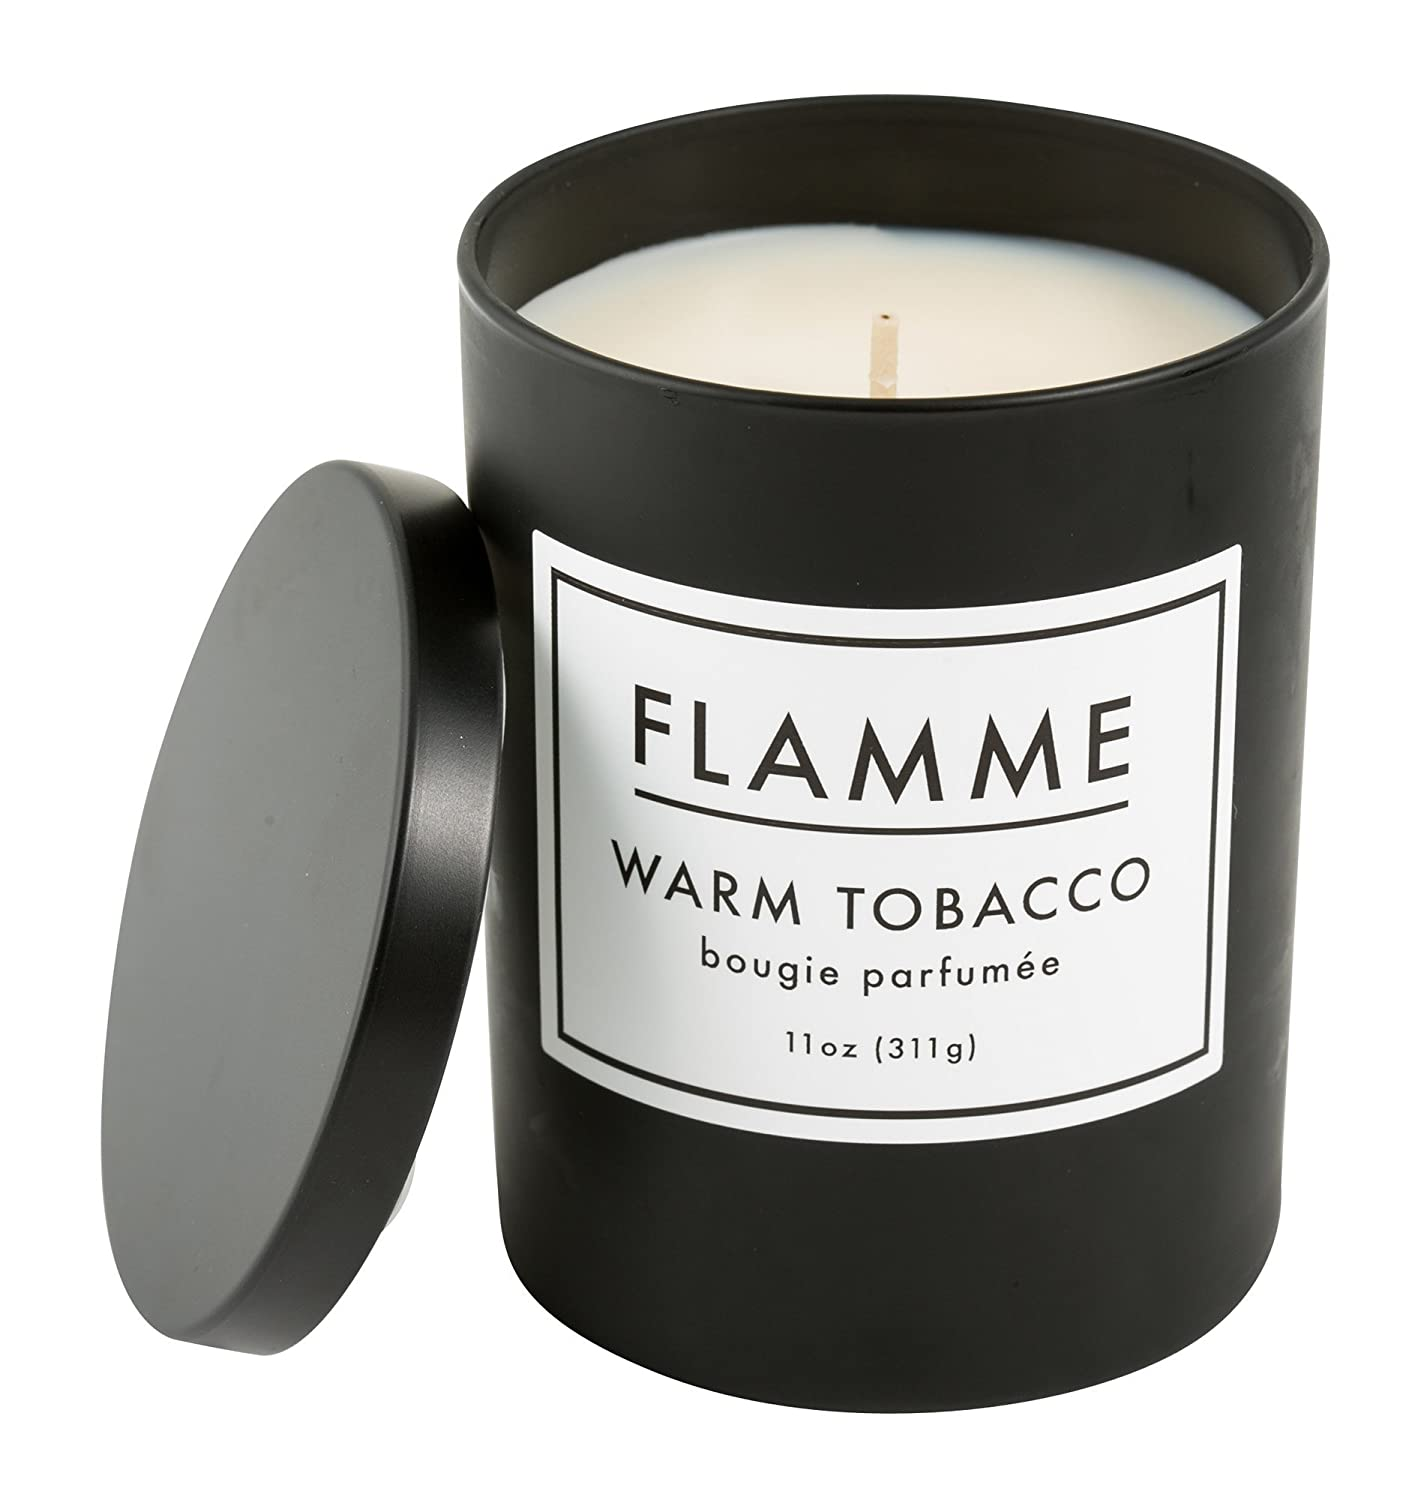 Flamme Candle Co. Signature Collection Warm Tobacco Candle, Natural Soy 11 Ounce Candle in Black Matte Jar Made in the USA (Tobacco Scented Candle)